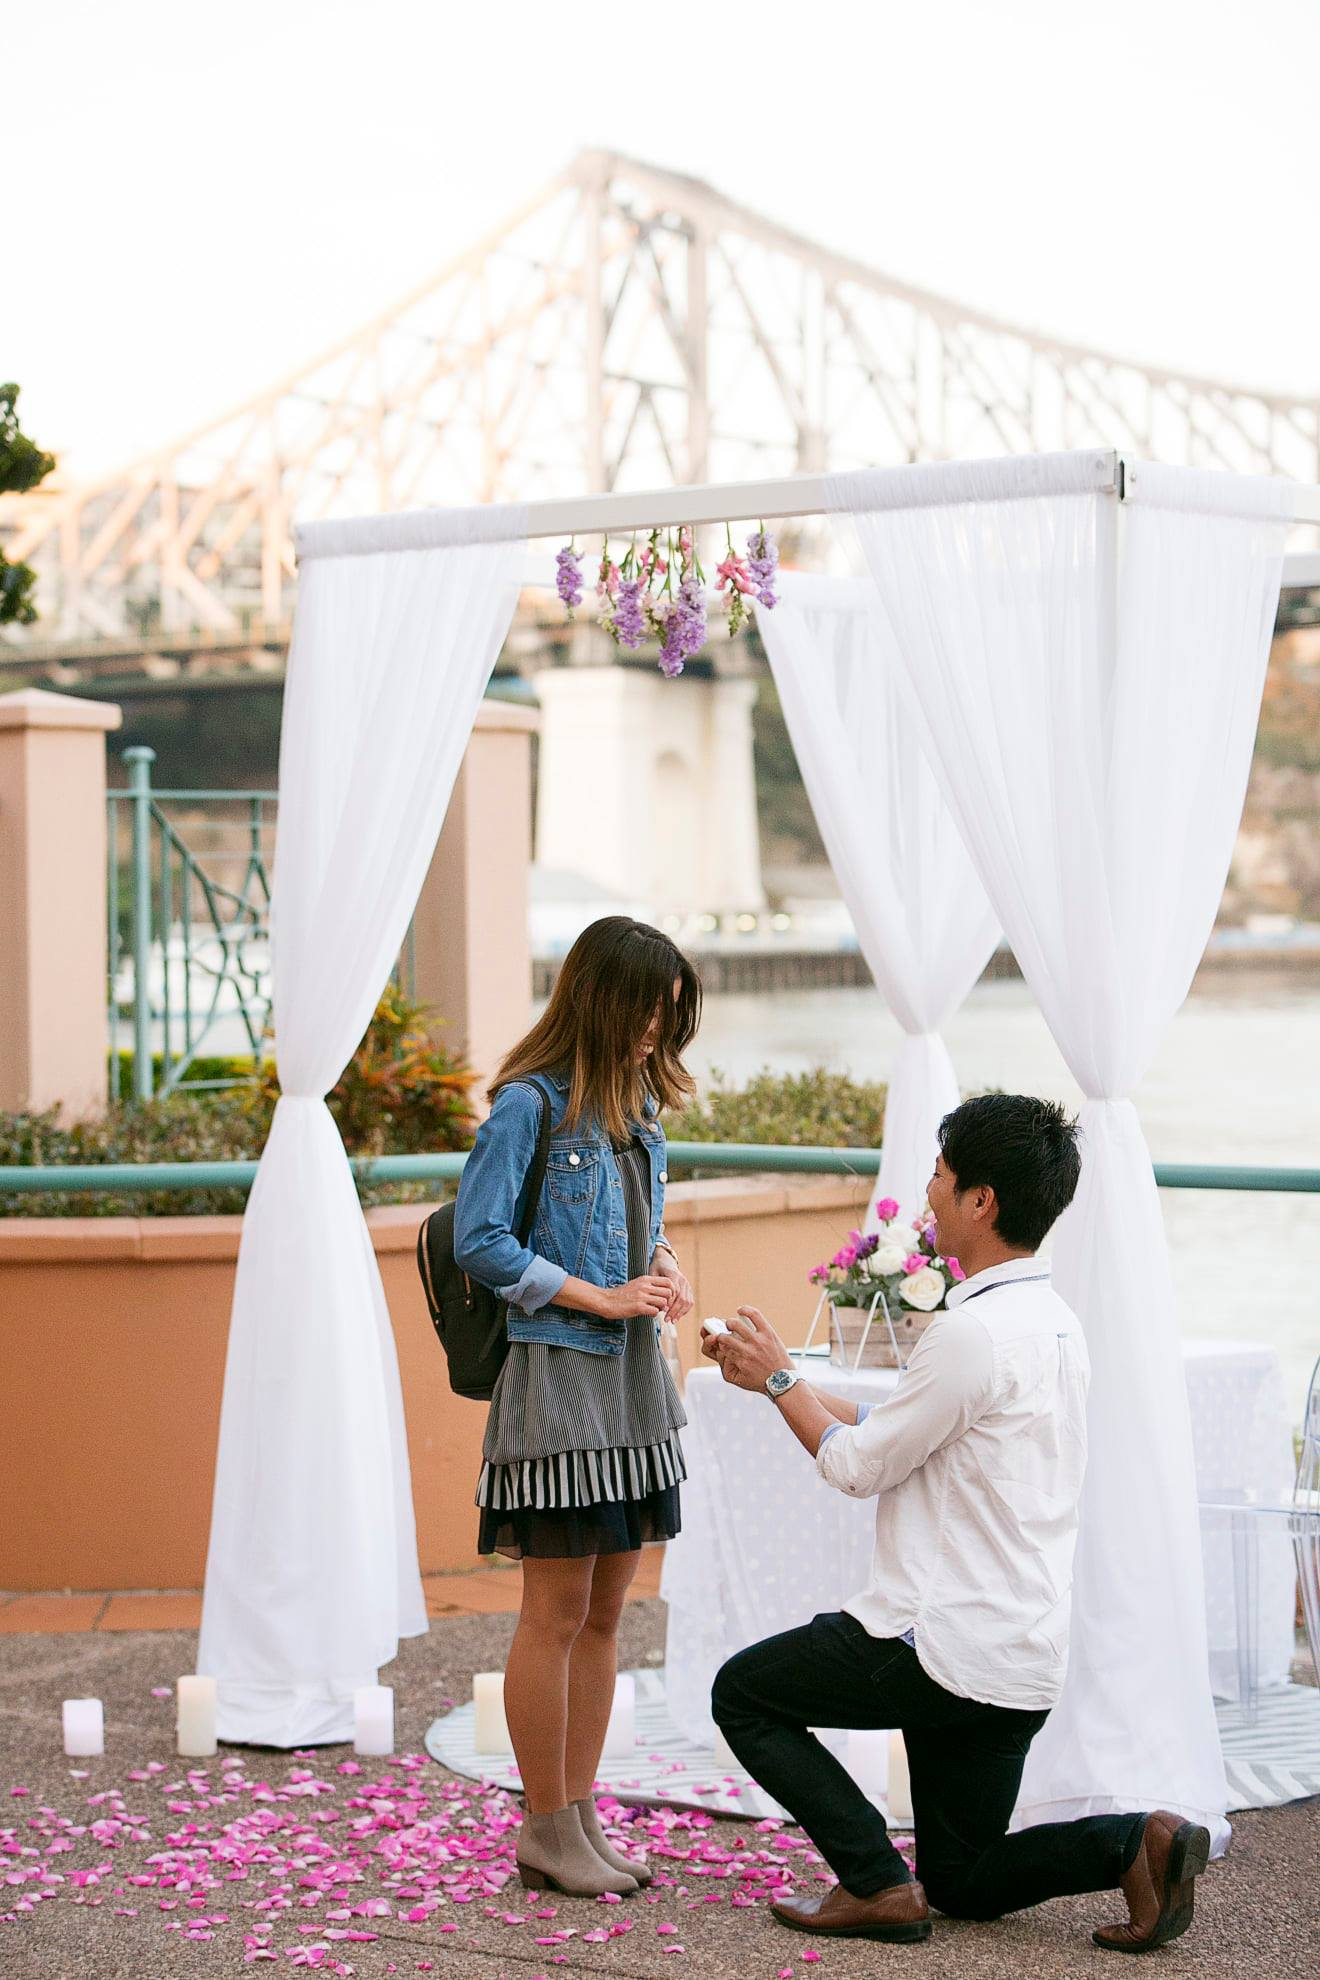 Brisbane marriage proposal ideas